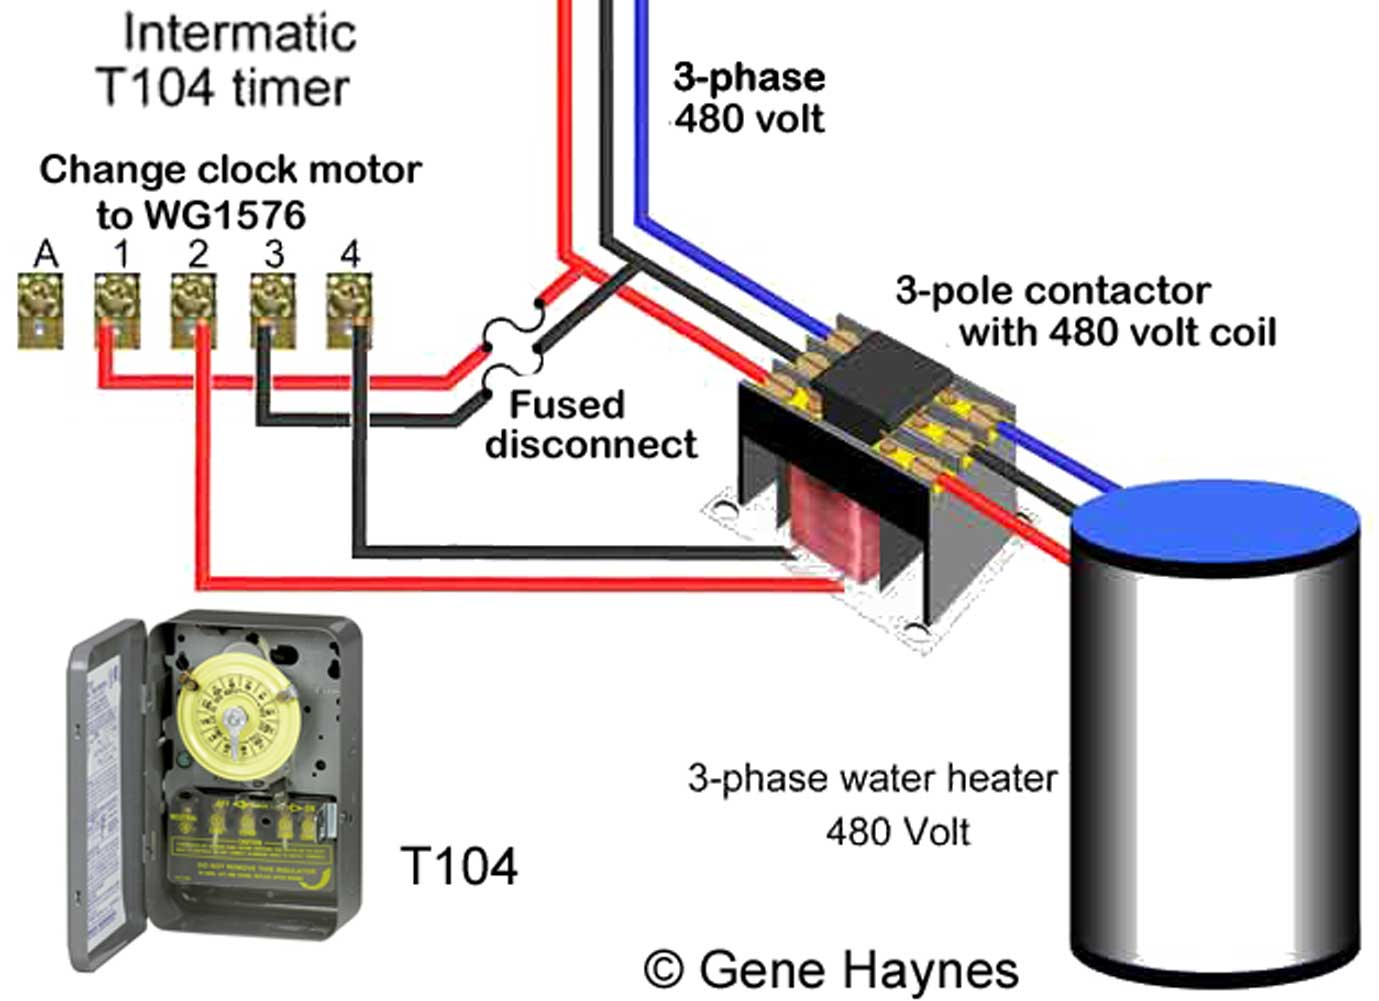 How To Wire Intermatic T104 And T103 T101 Timers Wiring Diagrams Moreover 240 Volt Motor Diagram On 3 Control 480 V Phase Using Timer Change 240v Wg1573 Clock Wg1576